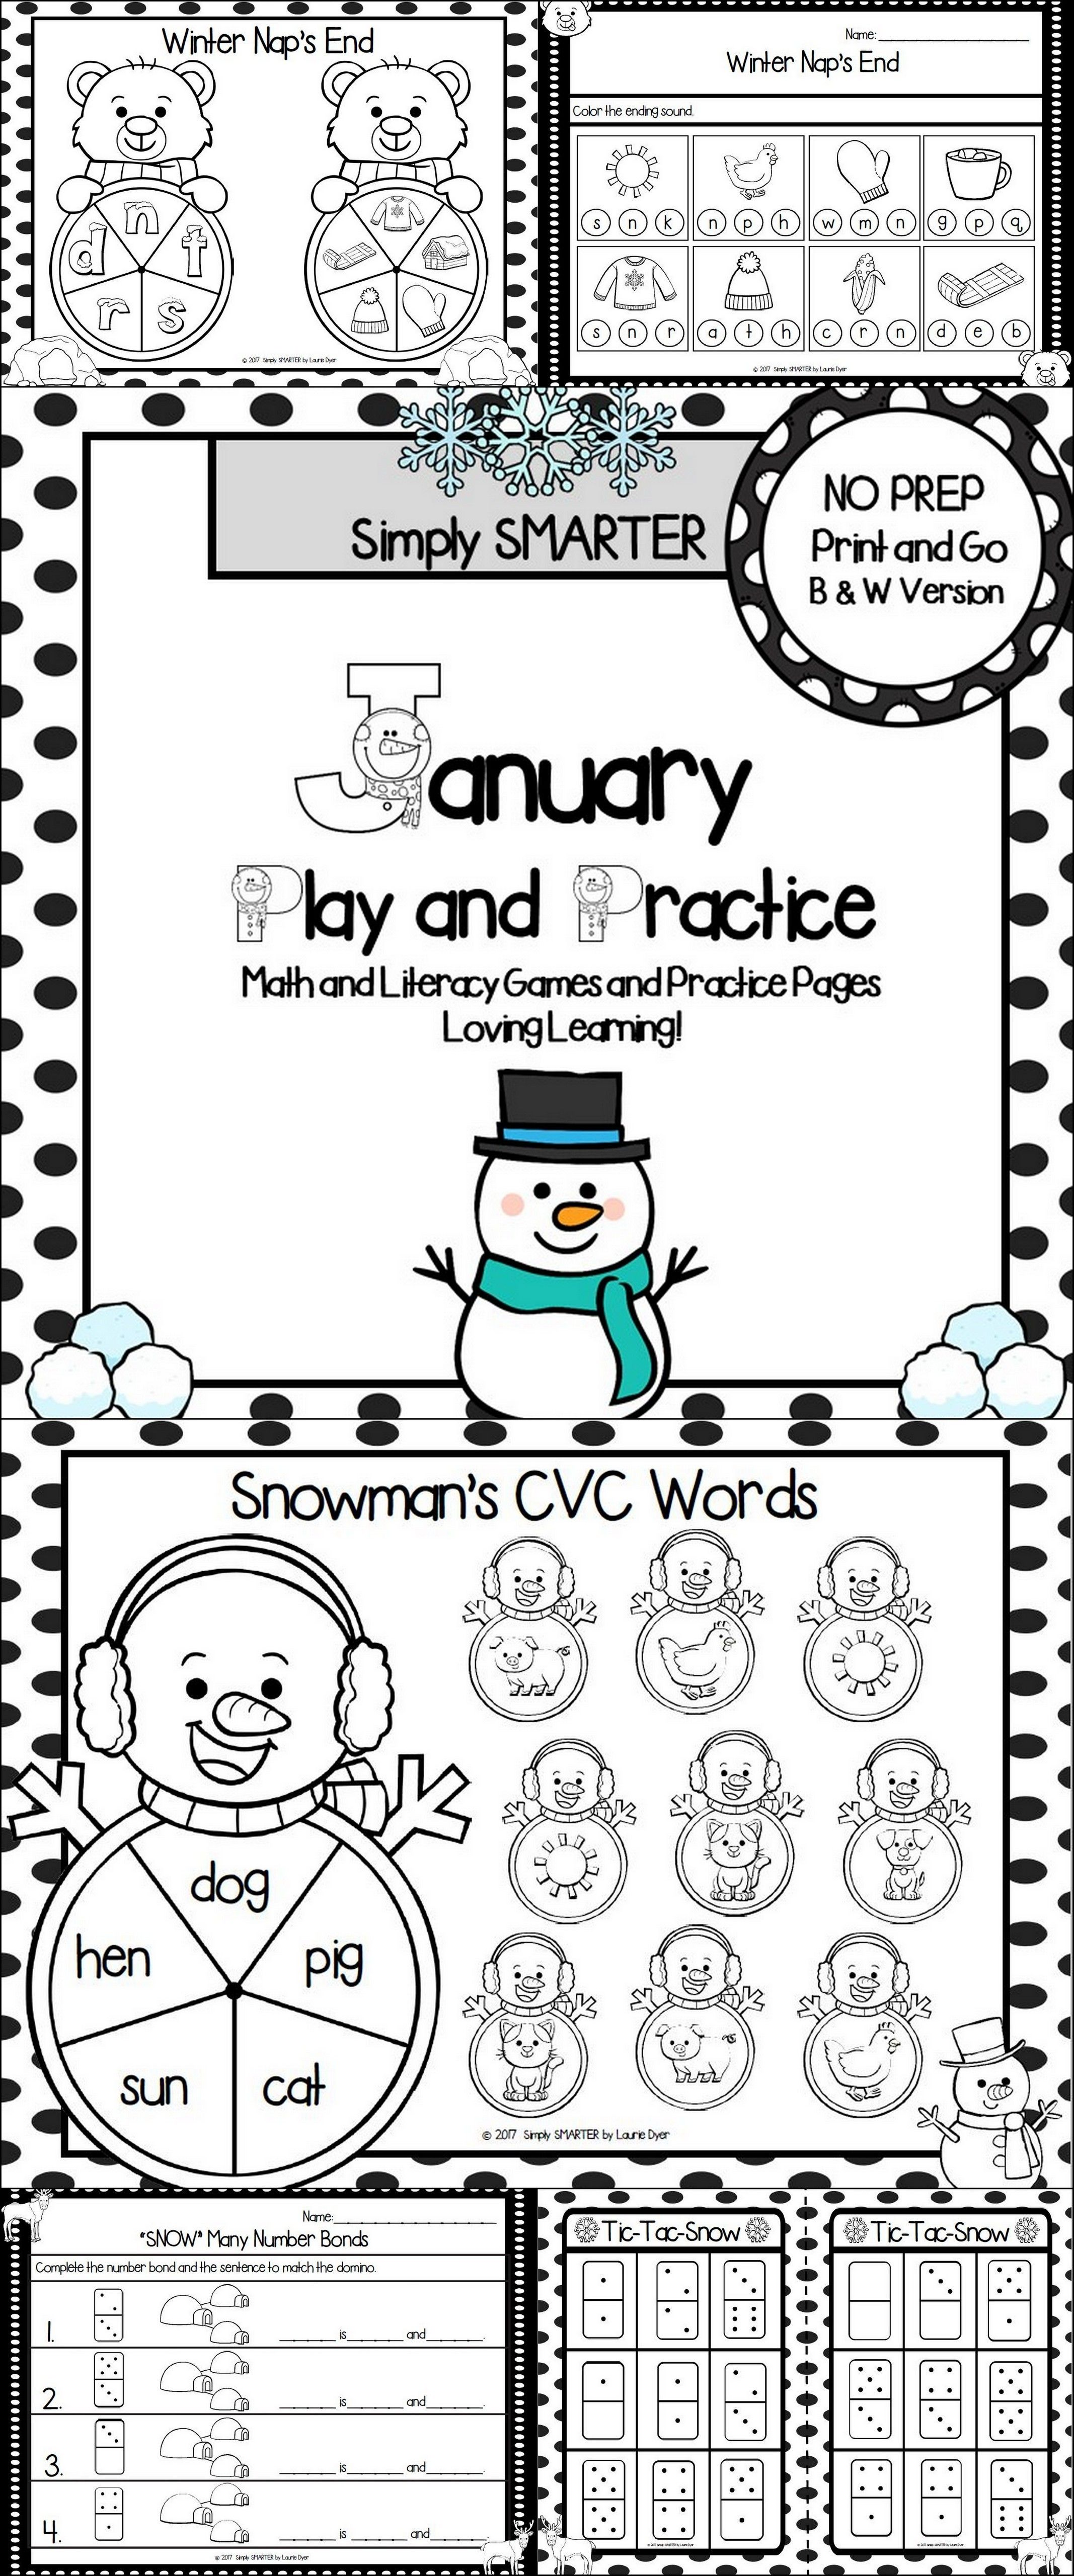 January Play And Practice No Prep Math And Literacy Games And Practice Pages